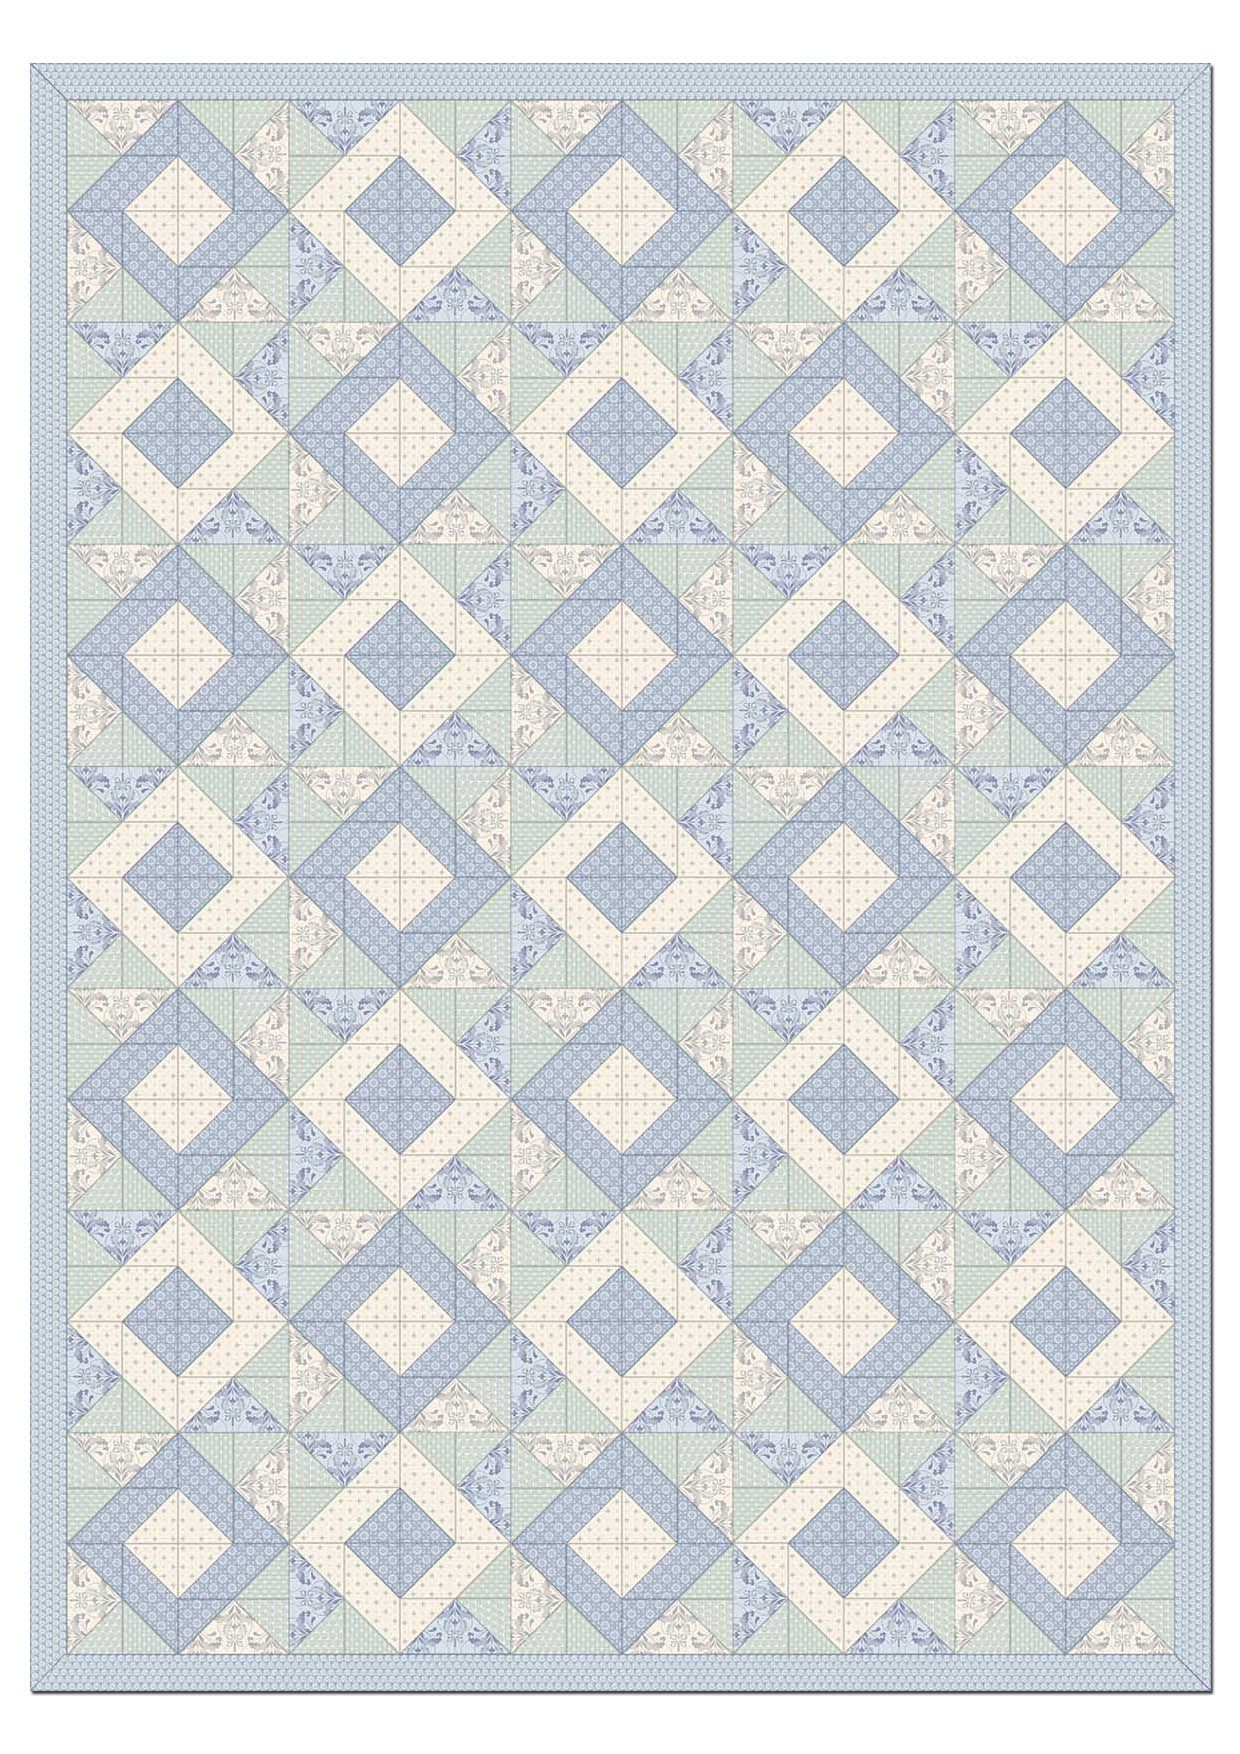 Pdf of pattern pages available for download here: http://www.africanskyfabrics.com/images/Beach%20House%20by%20Ginger%20Lily%20Studio%20Quilt%20Pattern.pdf